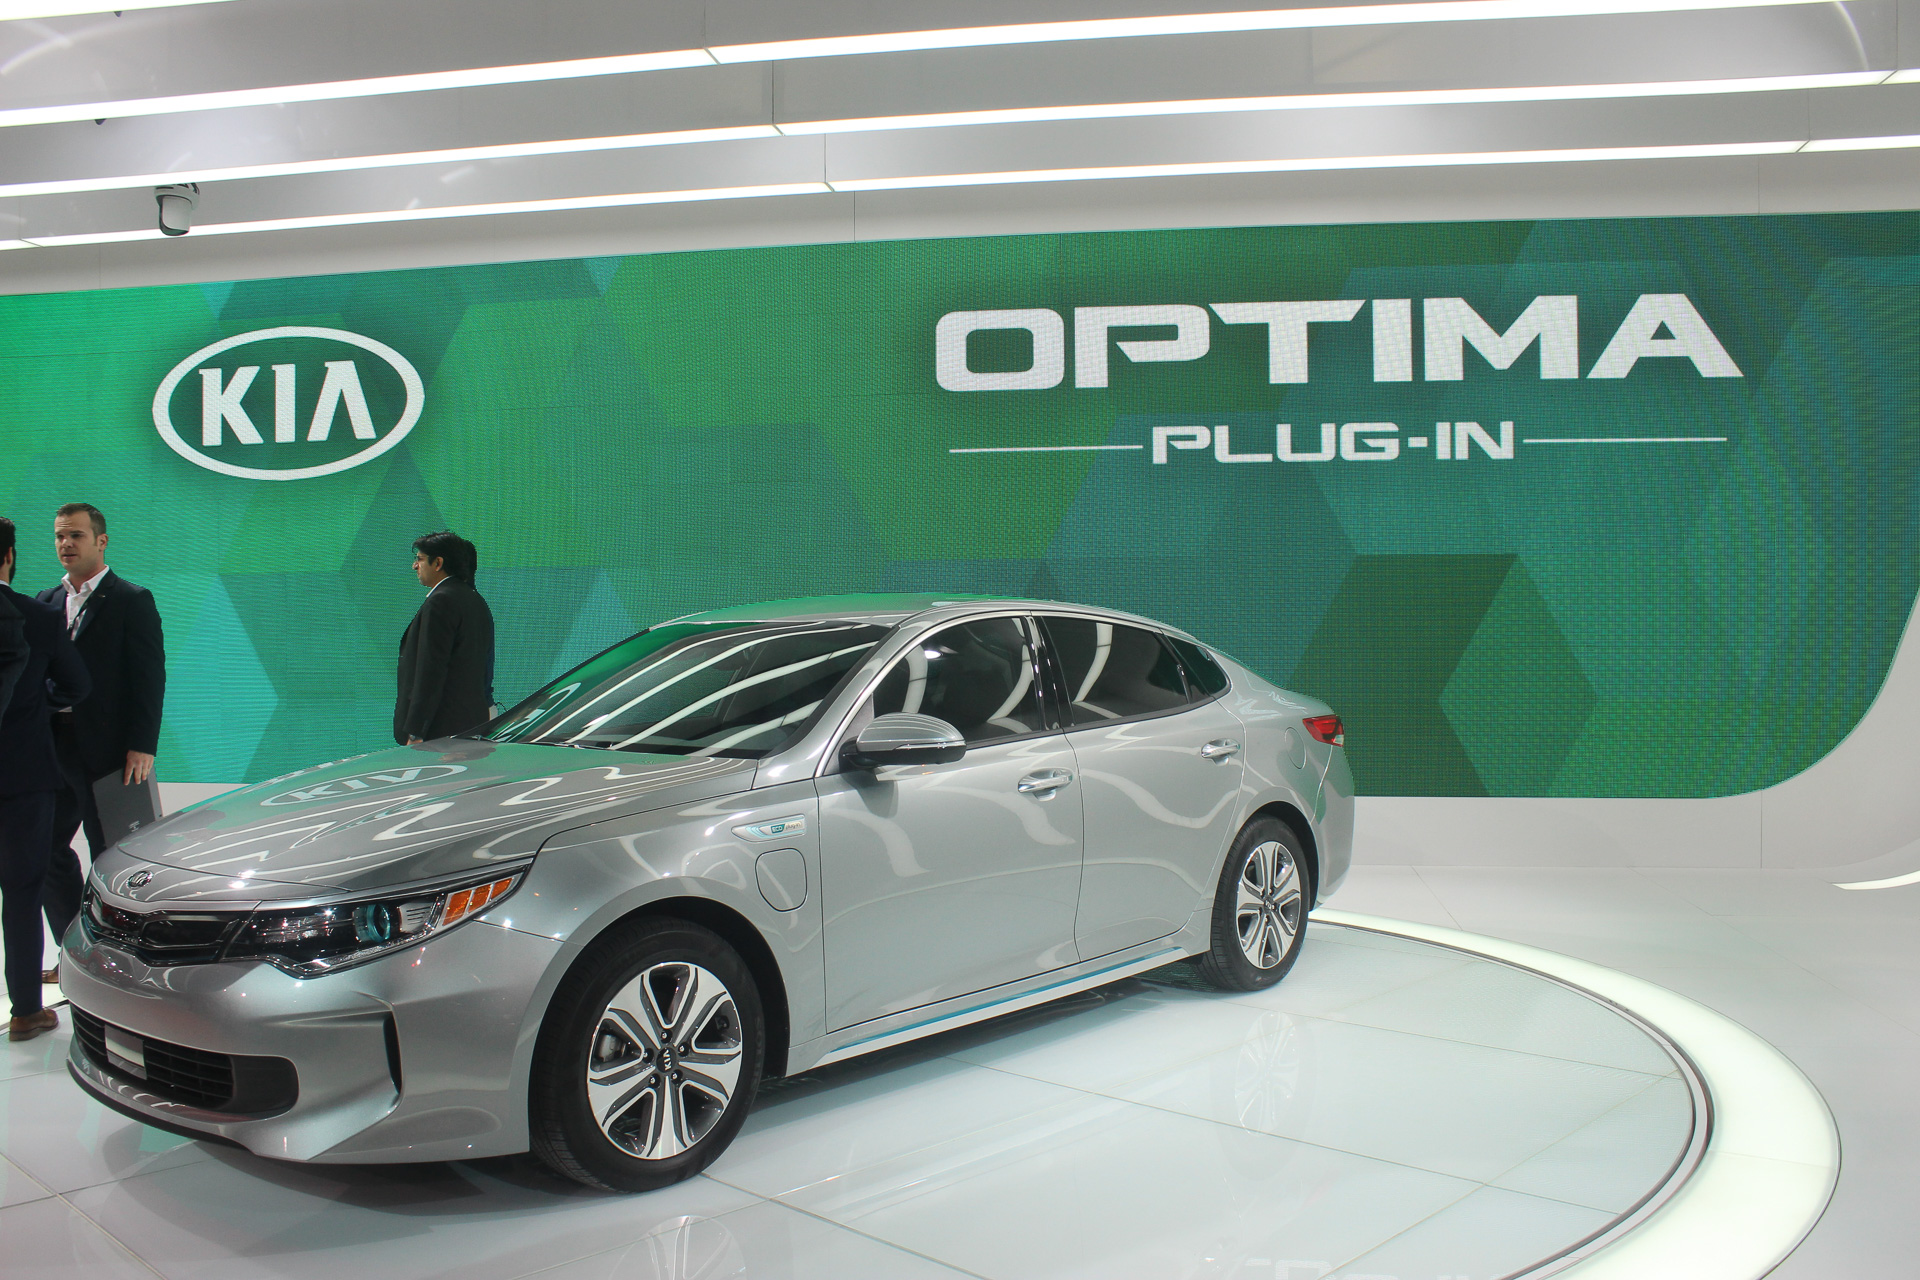 2017 Kia Optima Hybrids Details On 27 Mile Plug In Hybrid Live Photos And Video